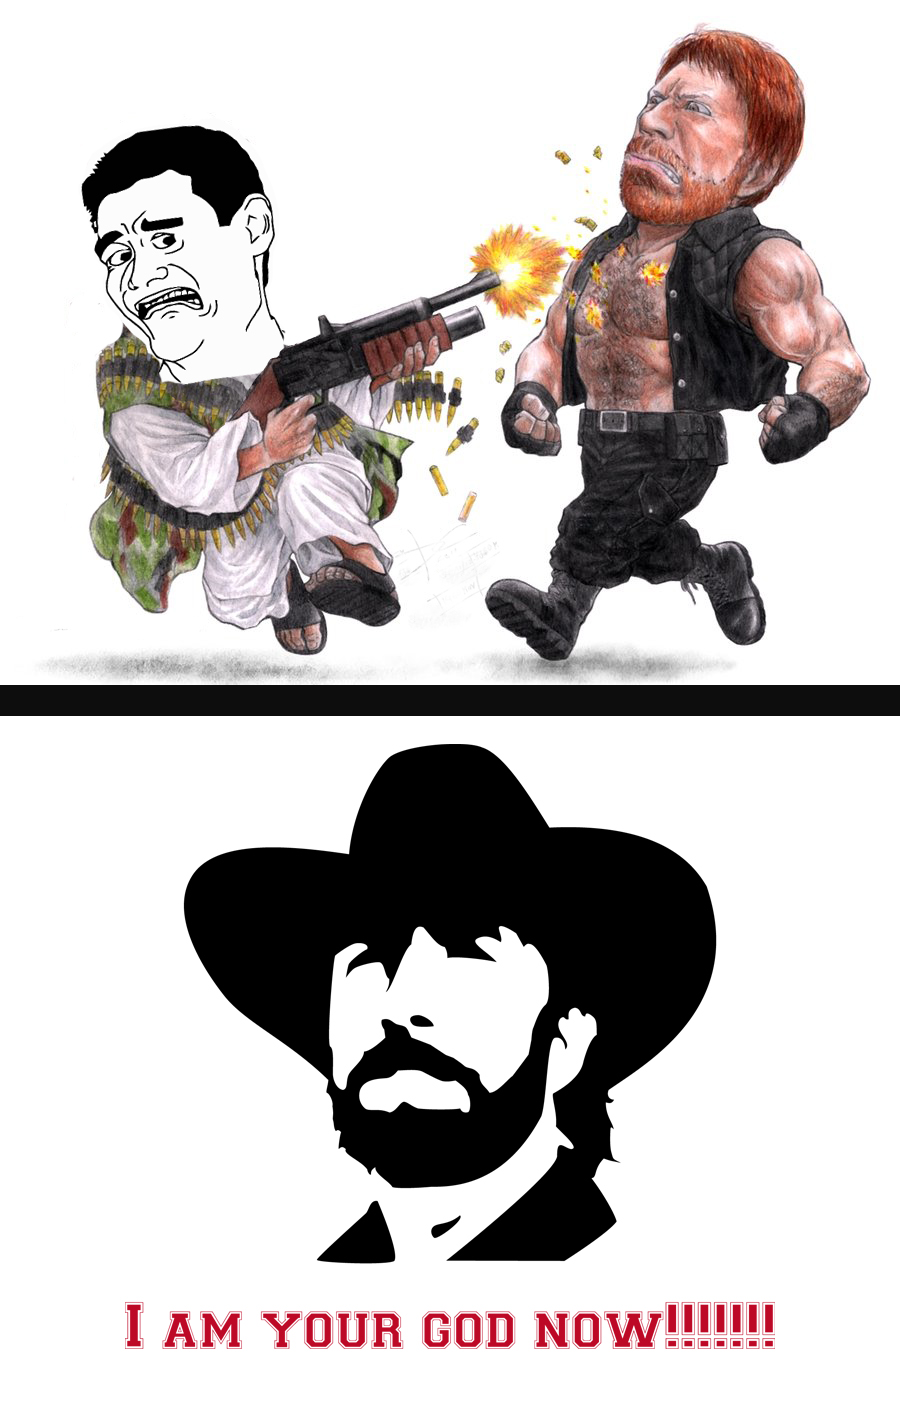 chuck_norris_and_yao_ming_meme_by_gth089 d4lnff5 chuck norris and yao ming meme by gth089 on deviantart,Yao Ming Meme Png